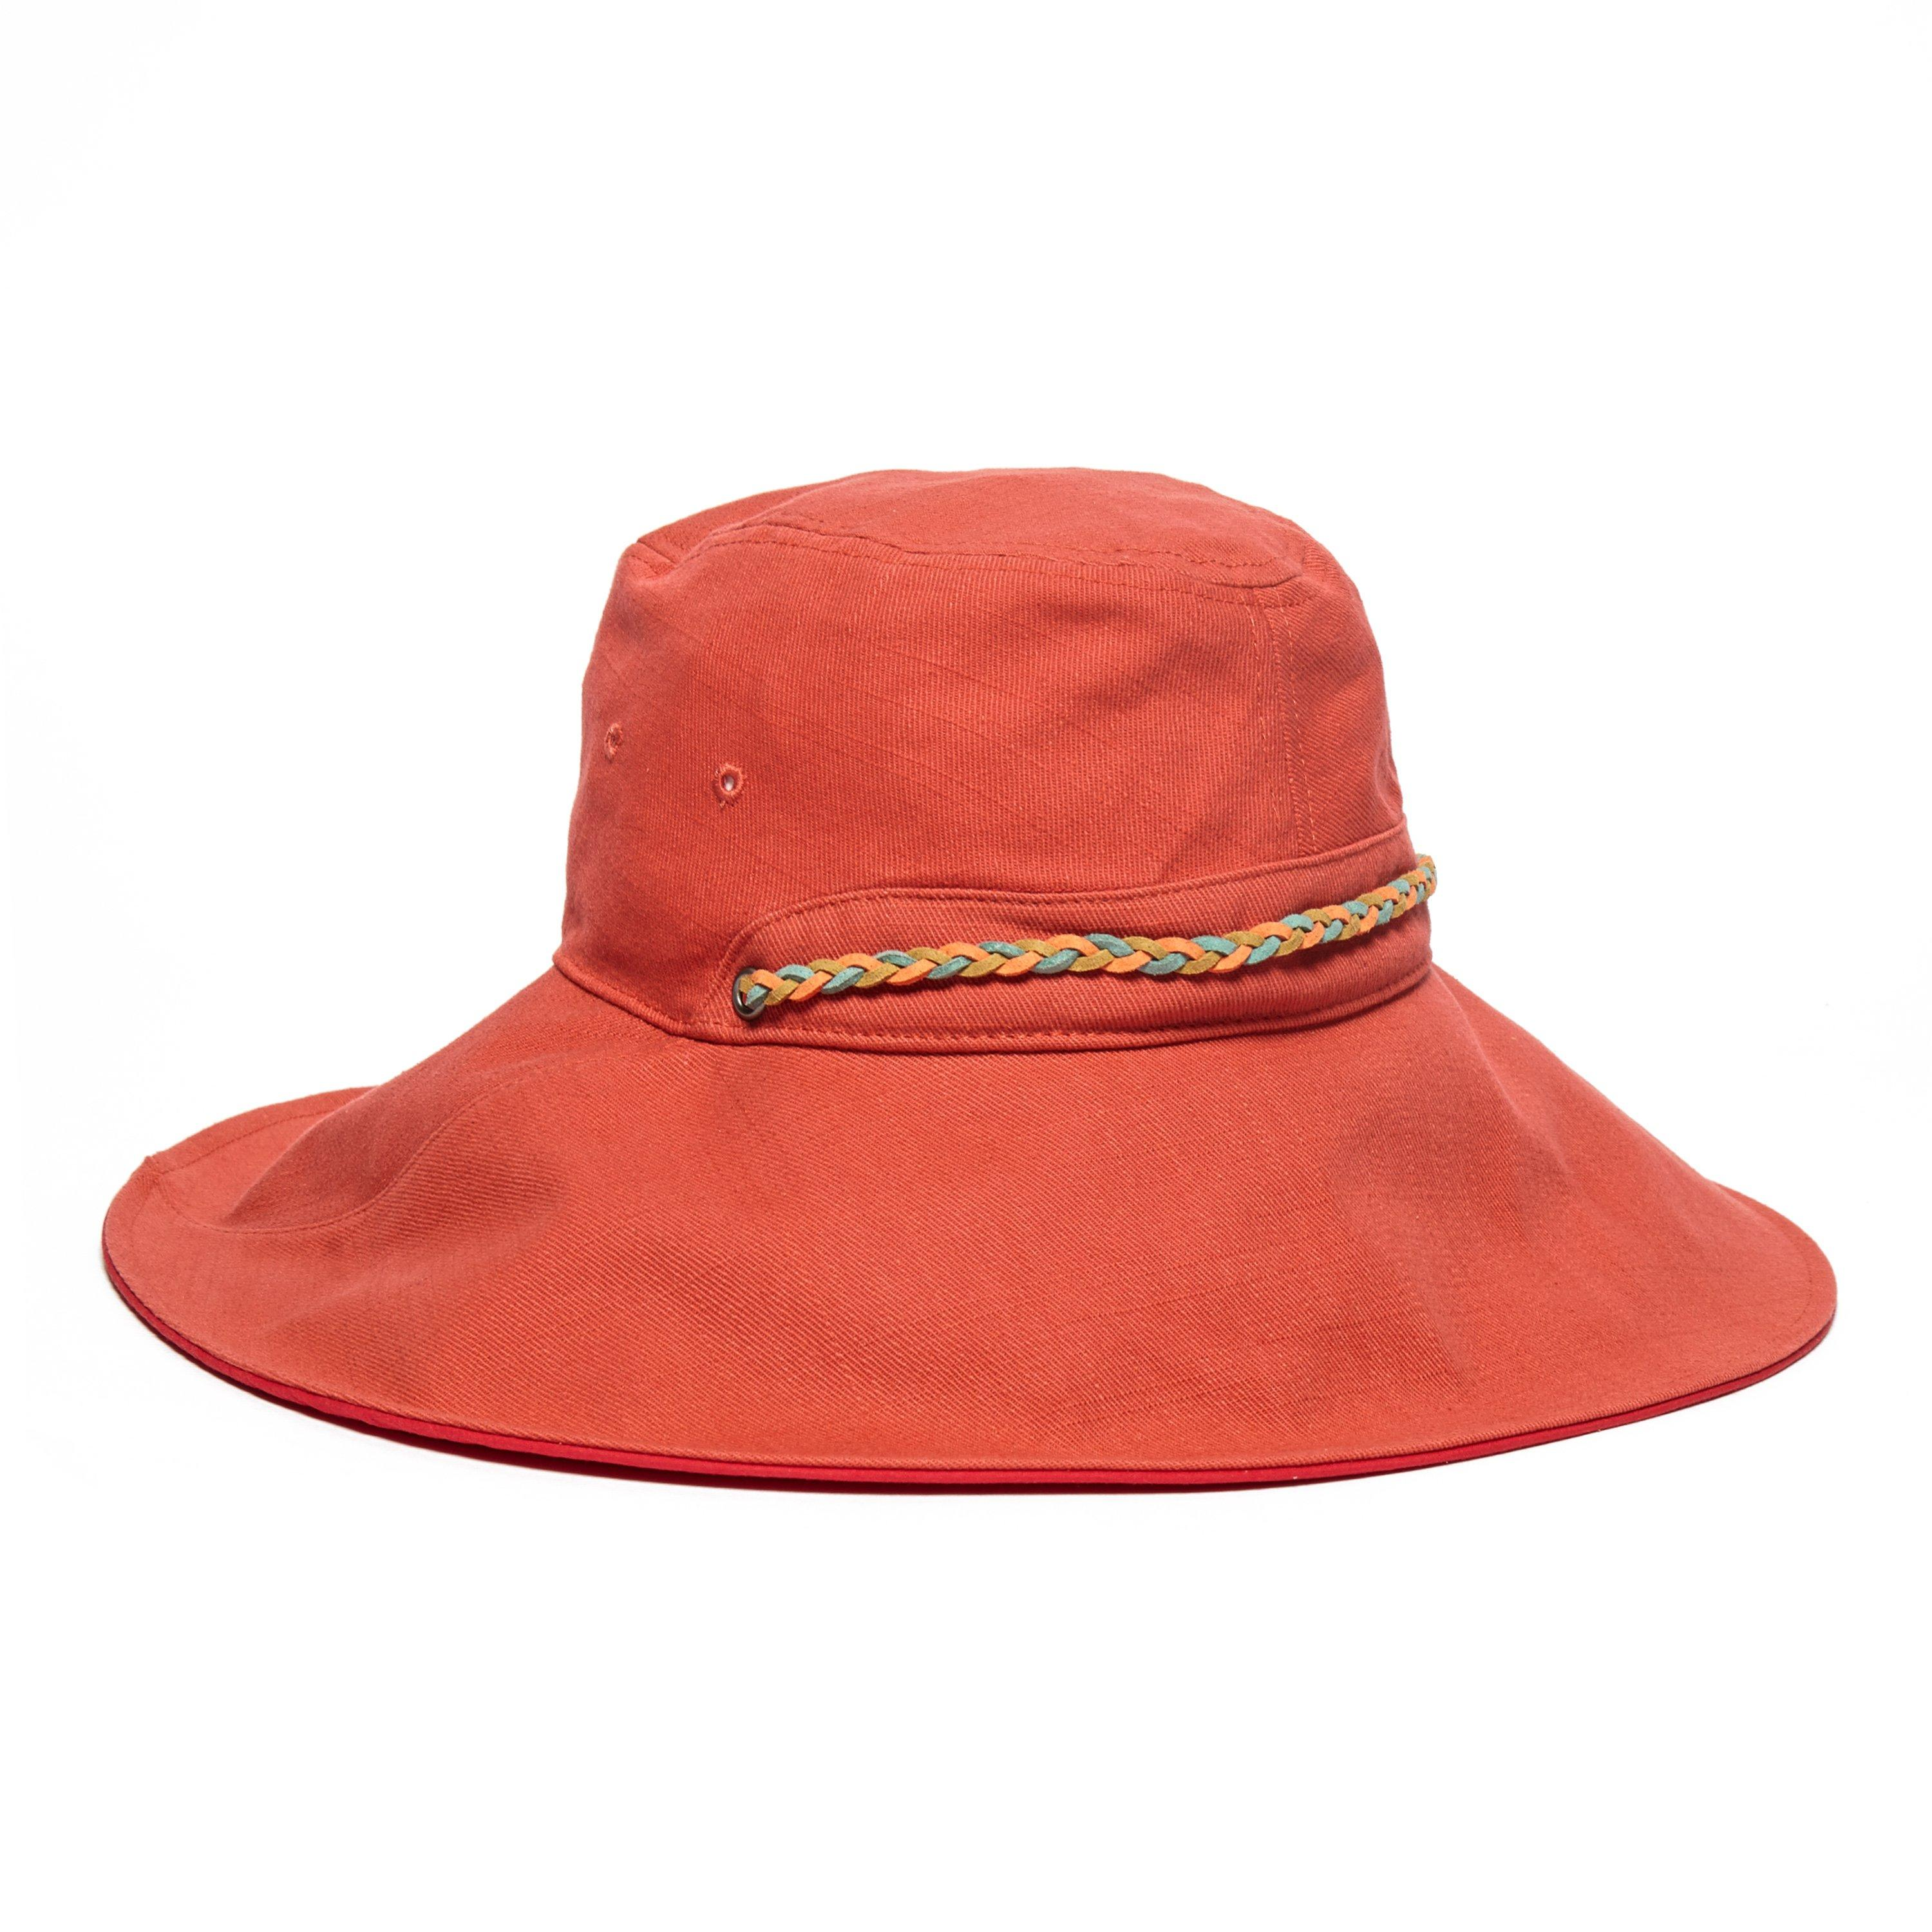 Outdoor Research Women's Mojave Sun Hat, Red